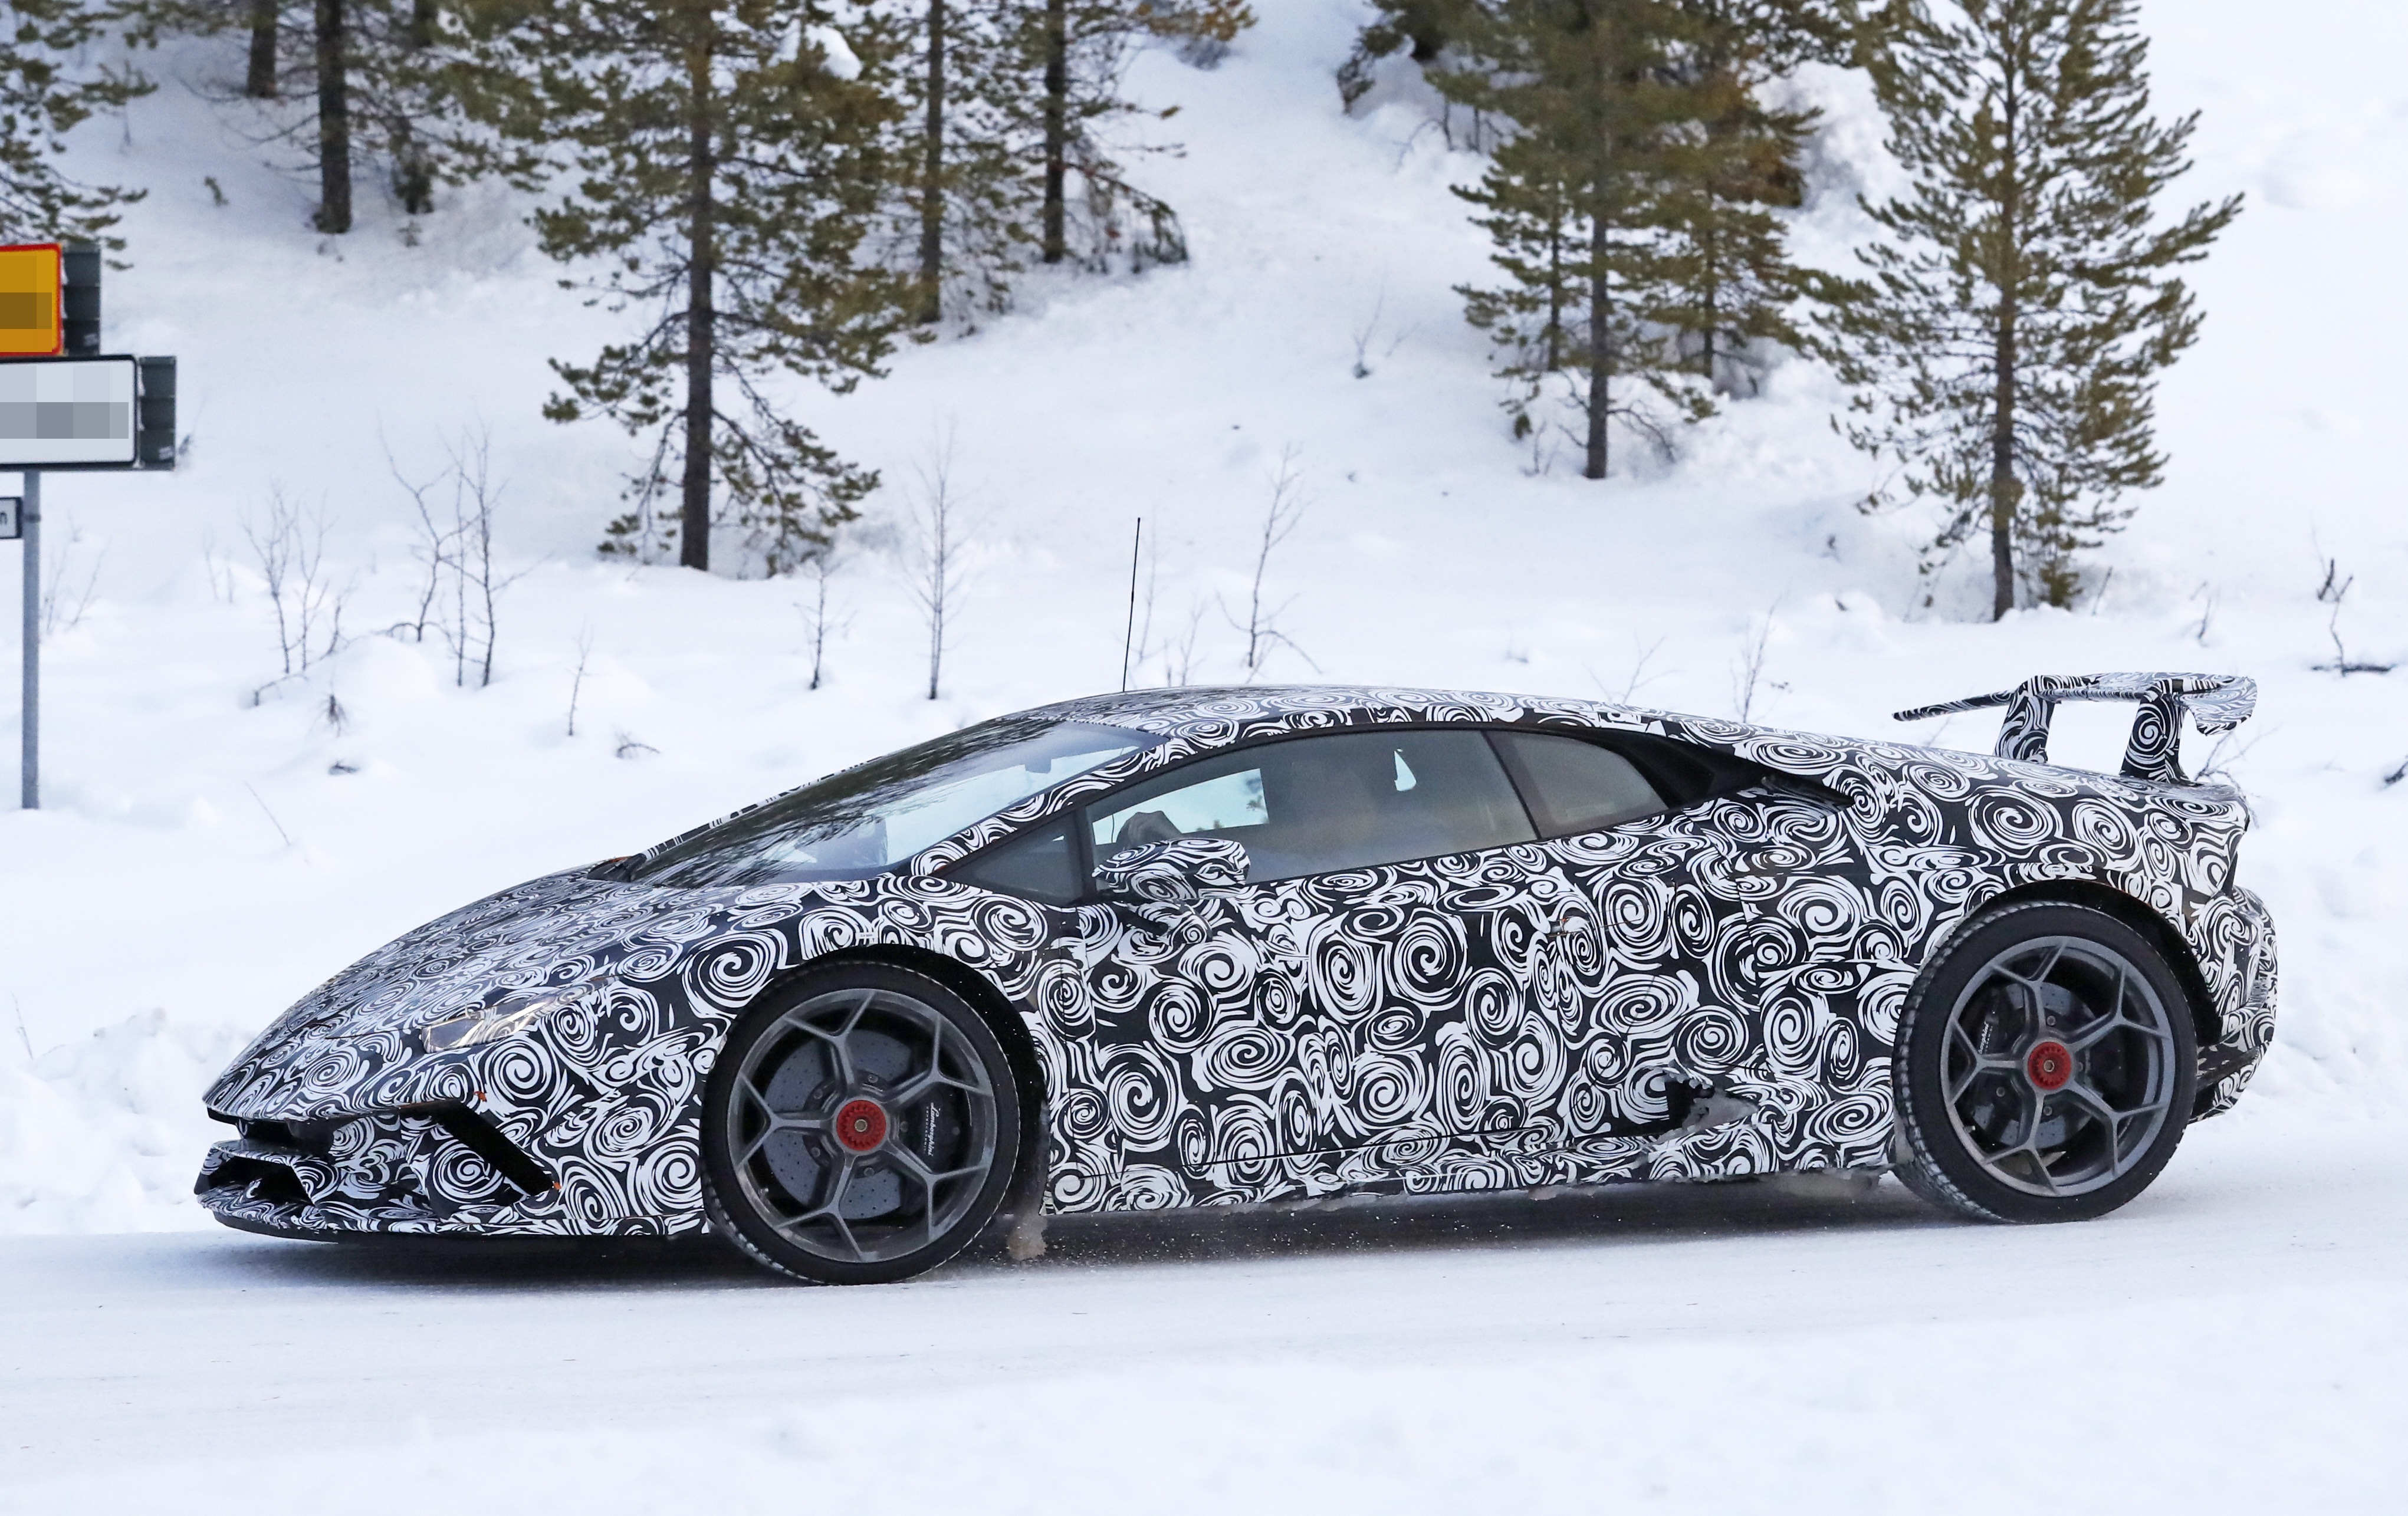 Lamborghini Huracan Superleggera winter 4